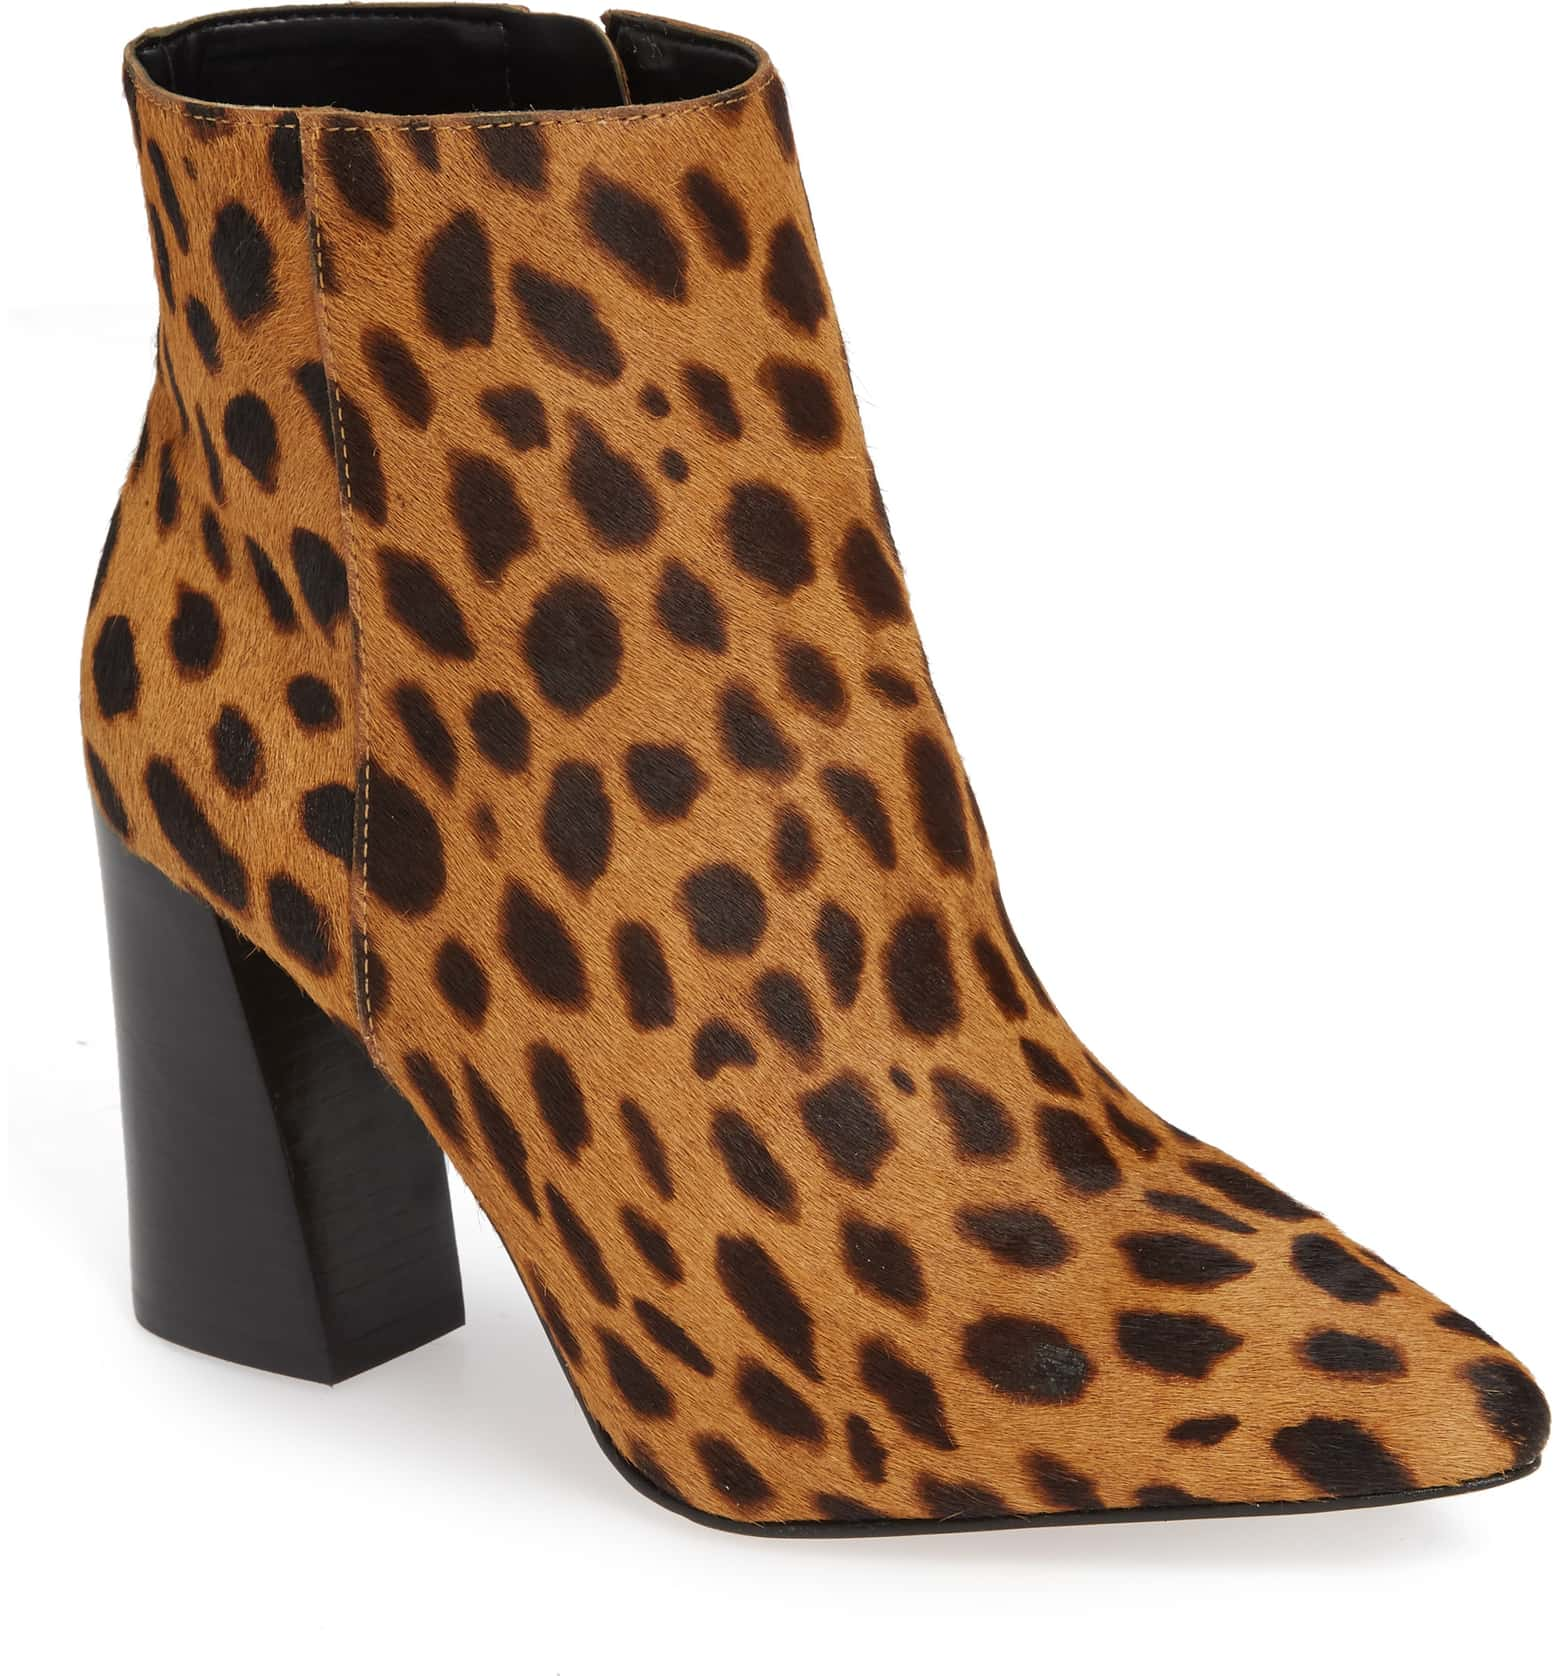 Thelmin Genuine Calf Hair Bootie $139.95